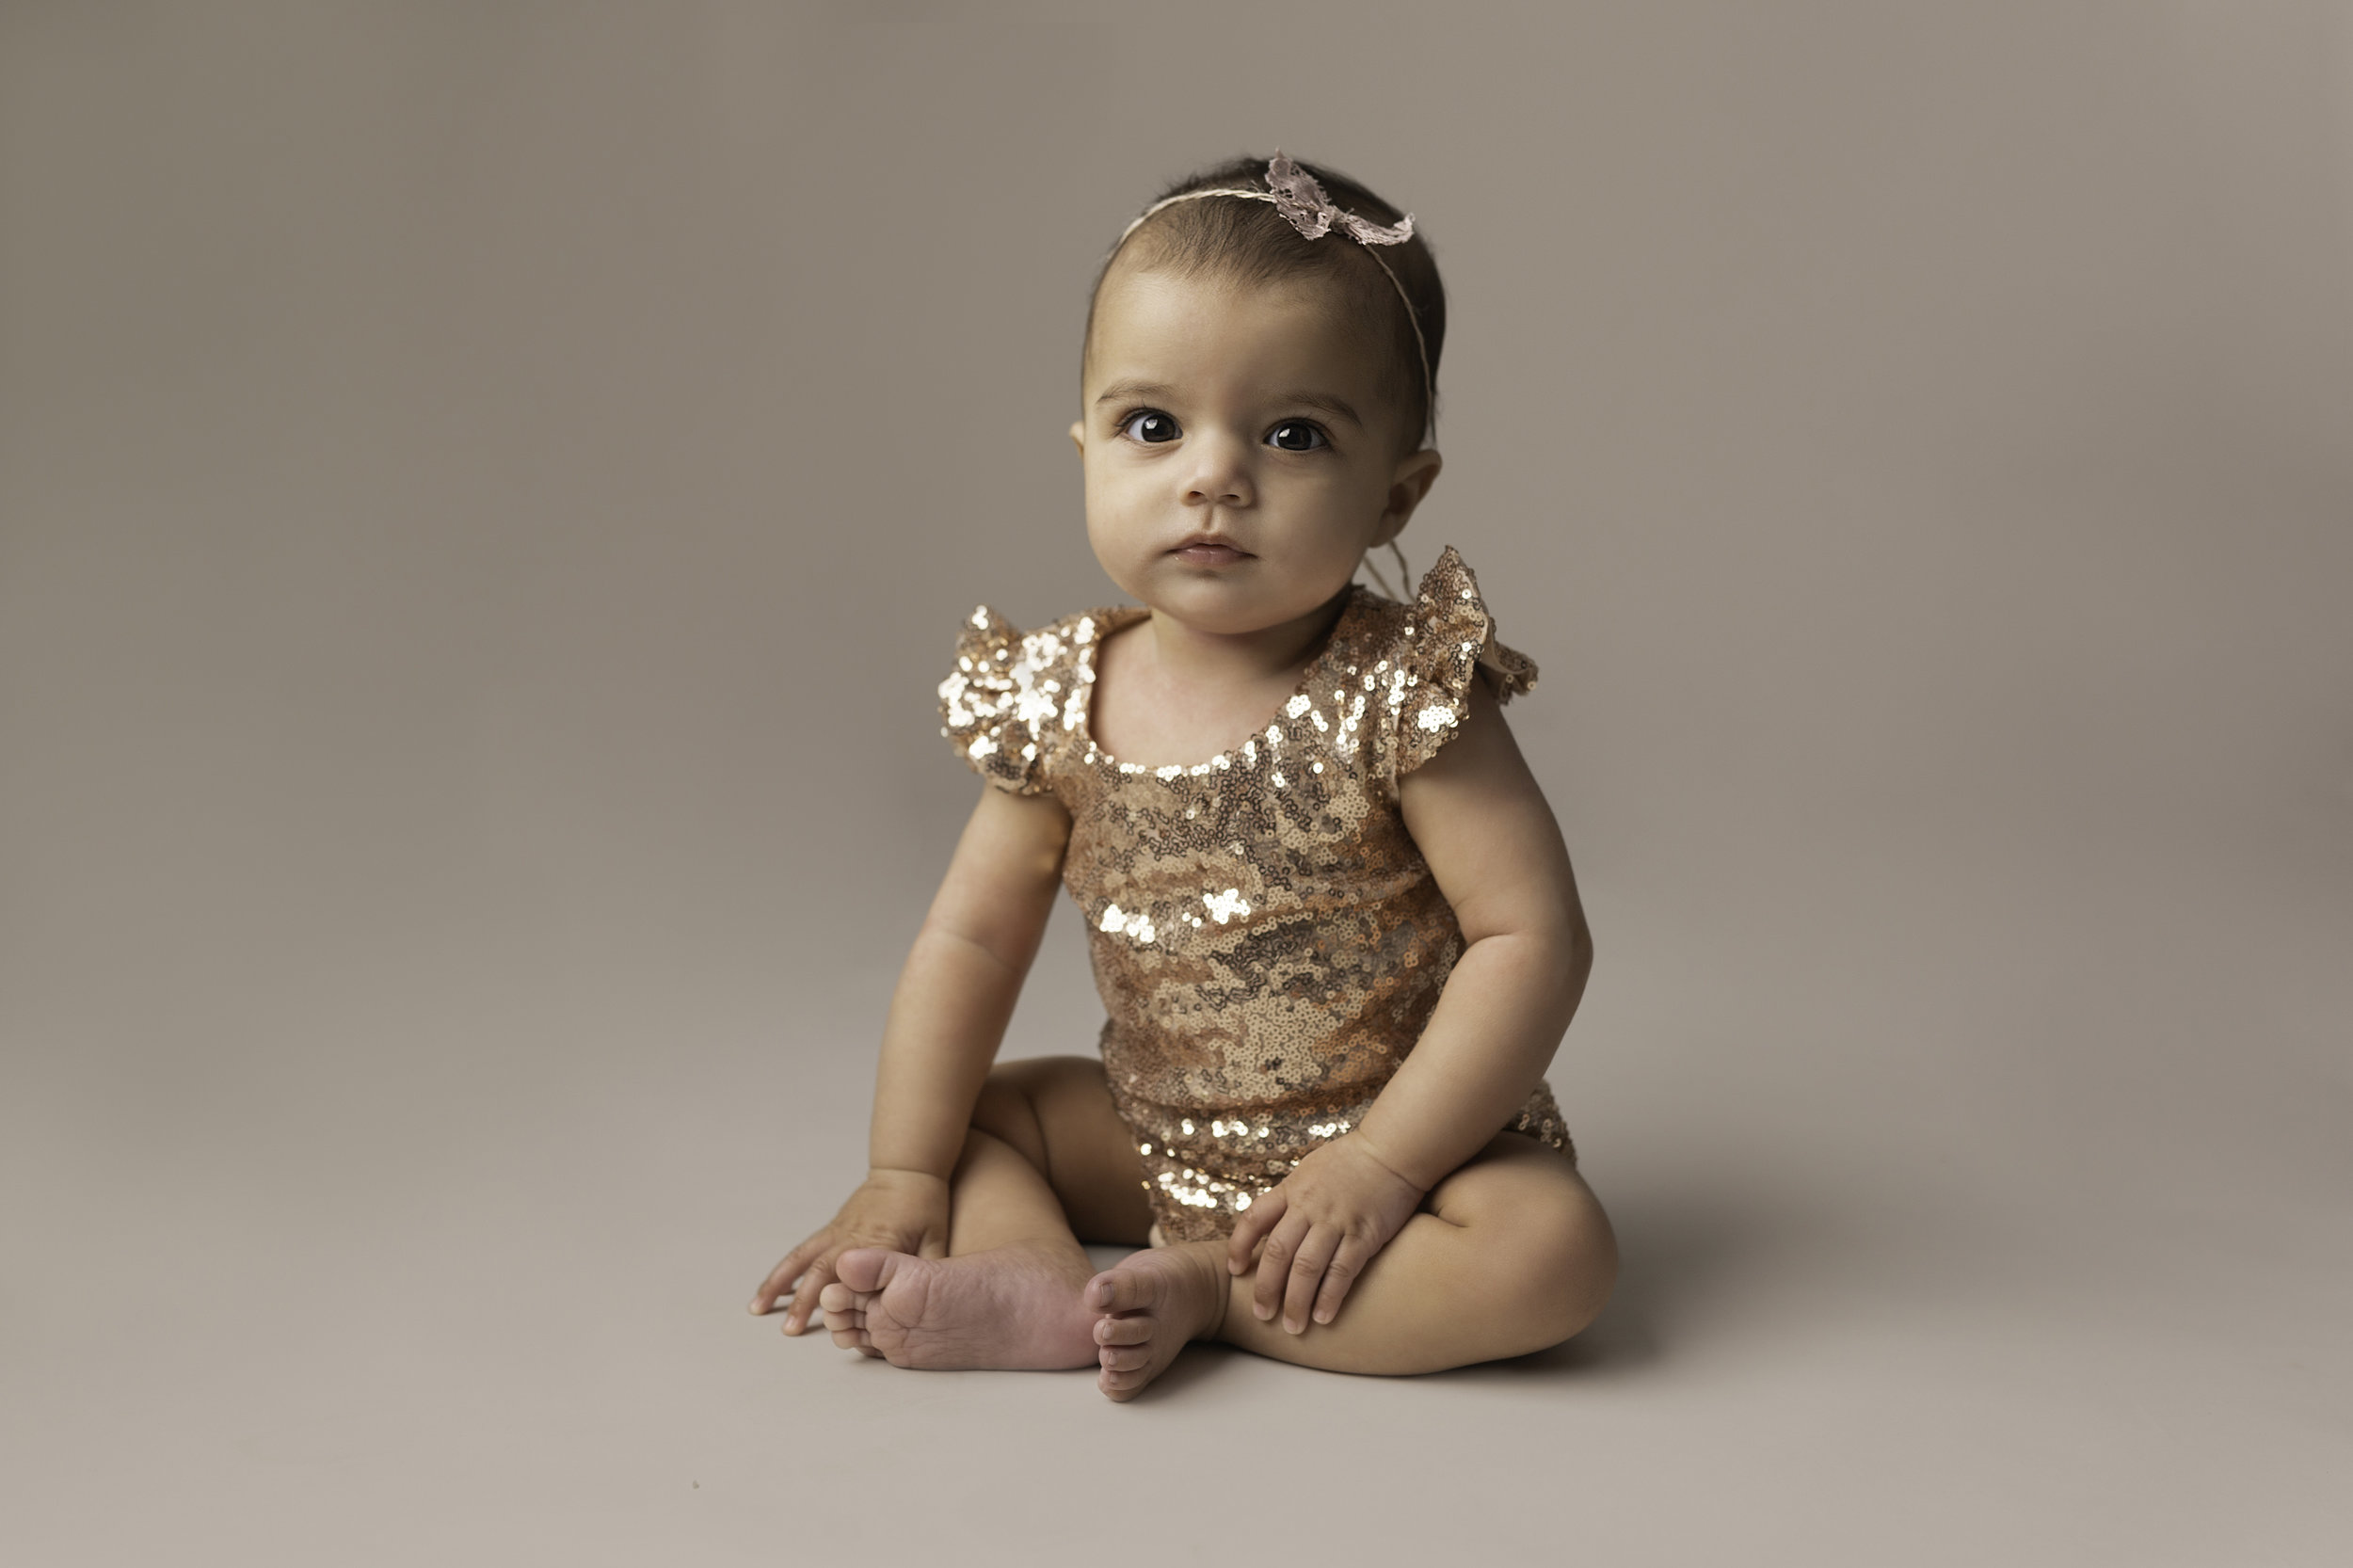 Lea-cooper-photography-childrens-photographer-portrait-session-sitter-session-6-months-old-photos-willenhall-wolverahmpton-birmingham-west-midlands-uk-1.jpg